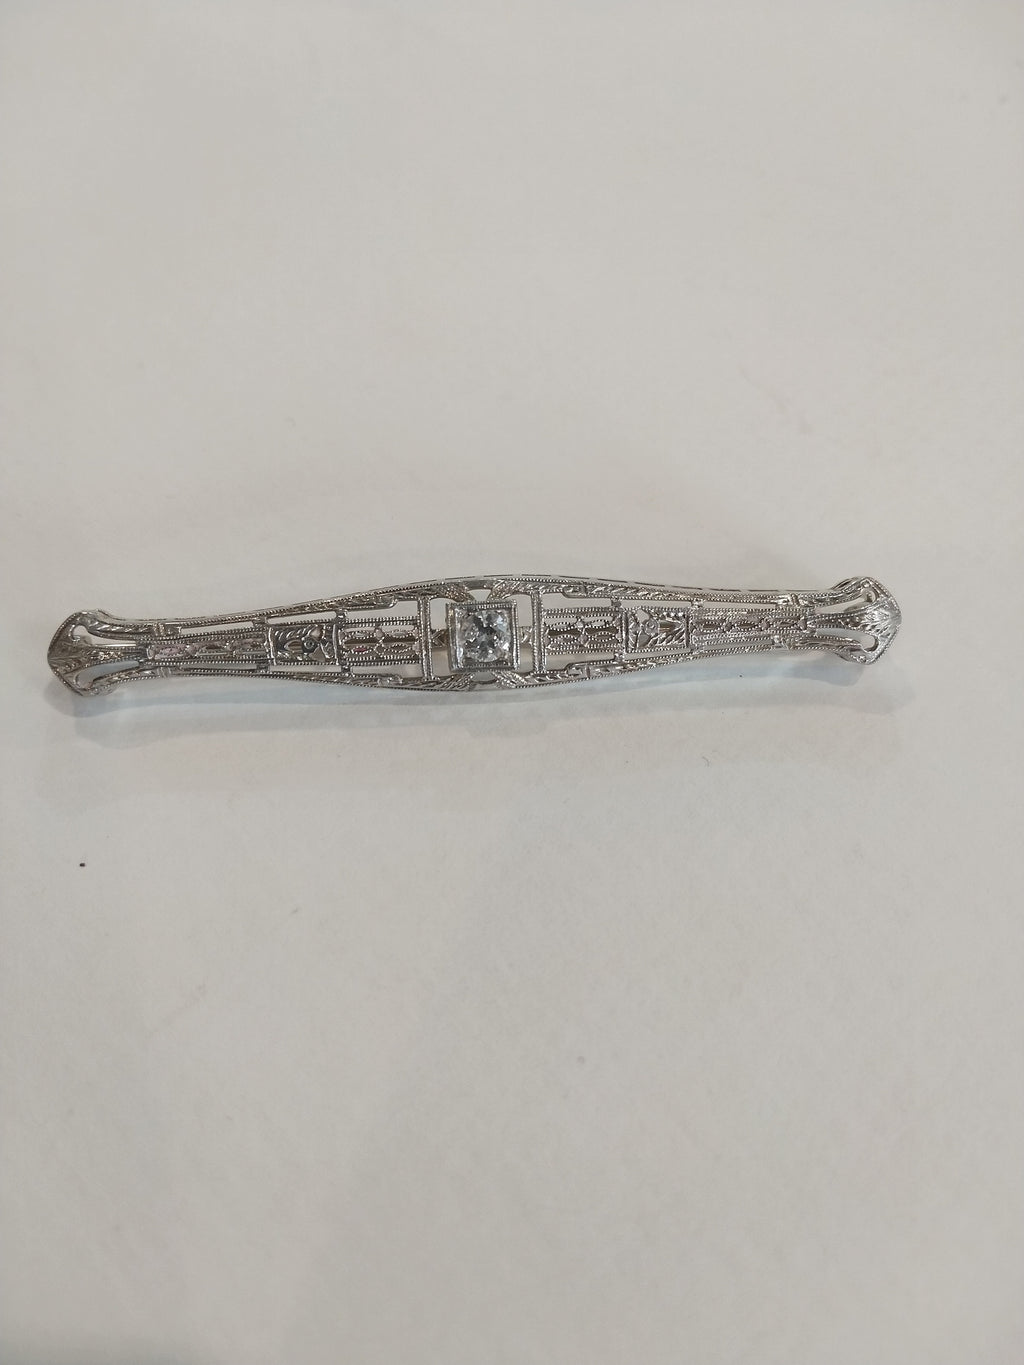 4.6g 14K White gold with 0.25ct I2- G diamond 1920's Brooch